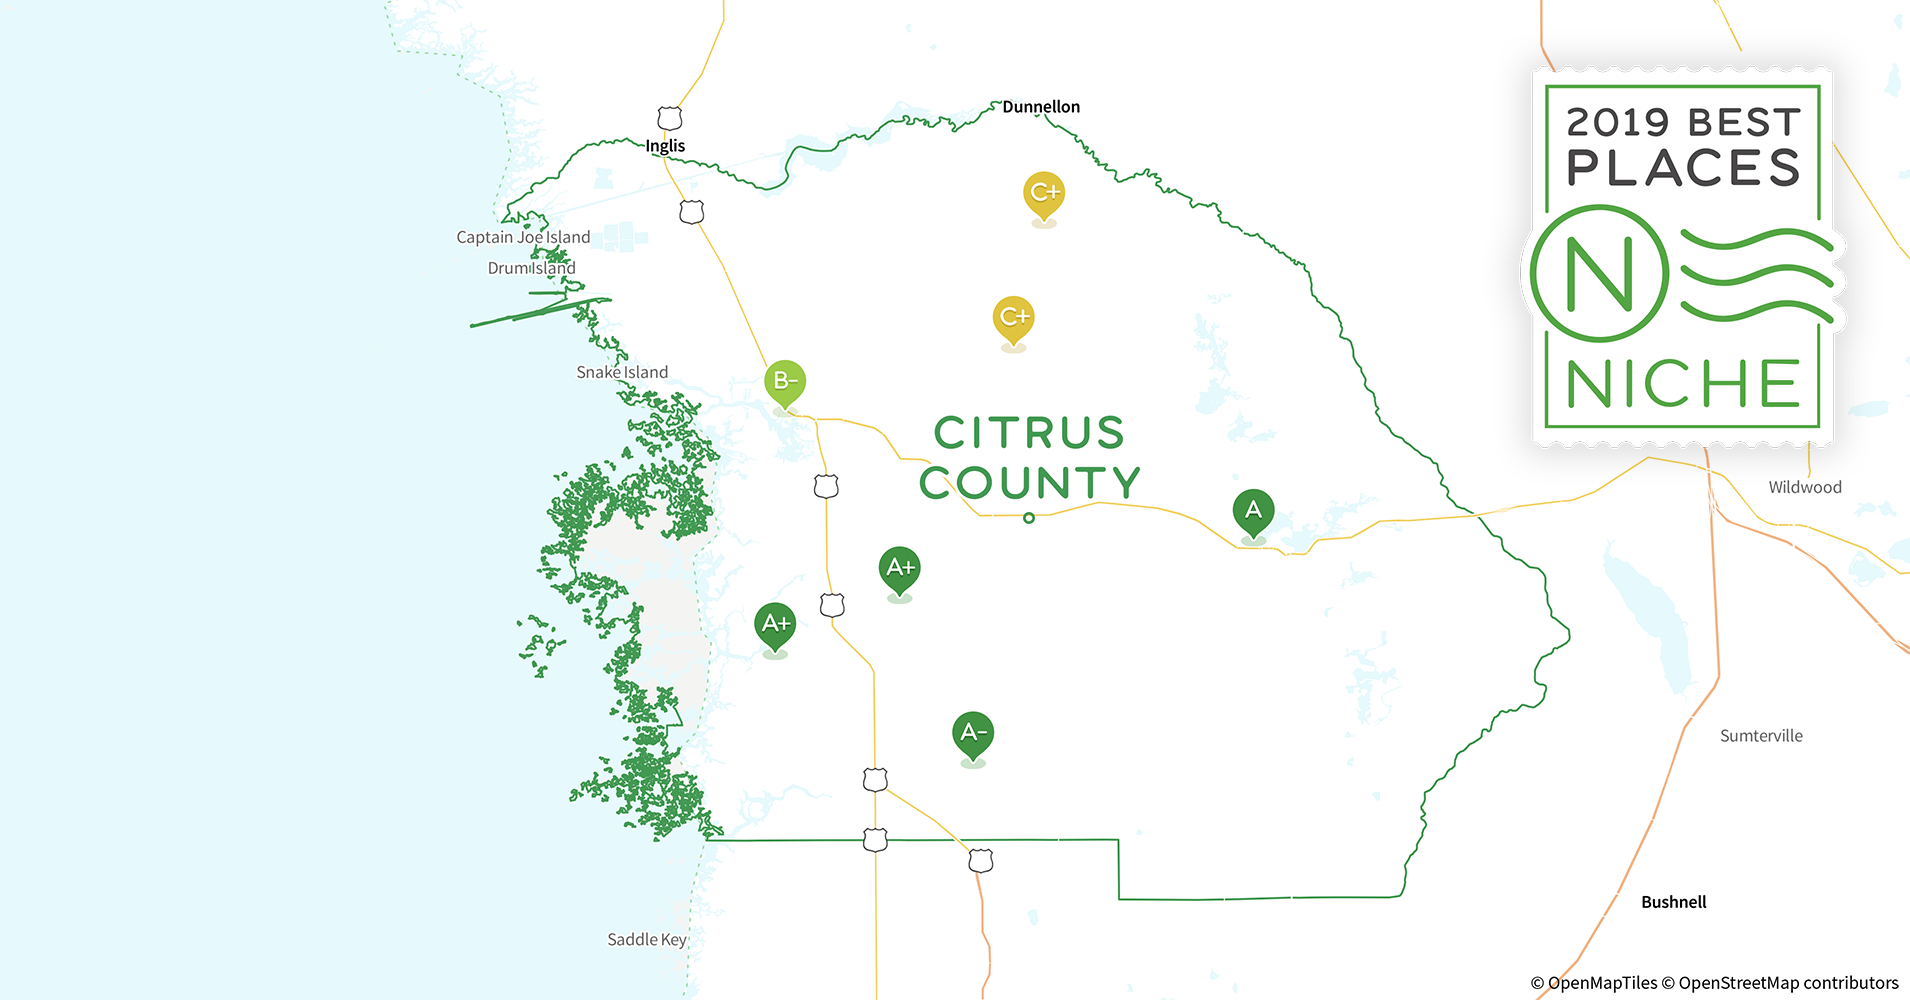 2019 Best Places to Live in Citrus County, FL - Niche